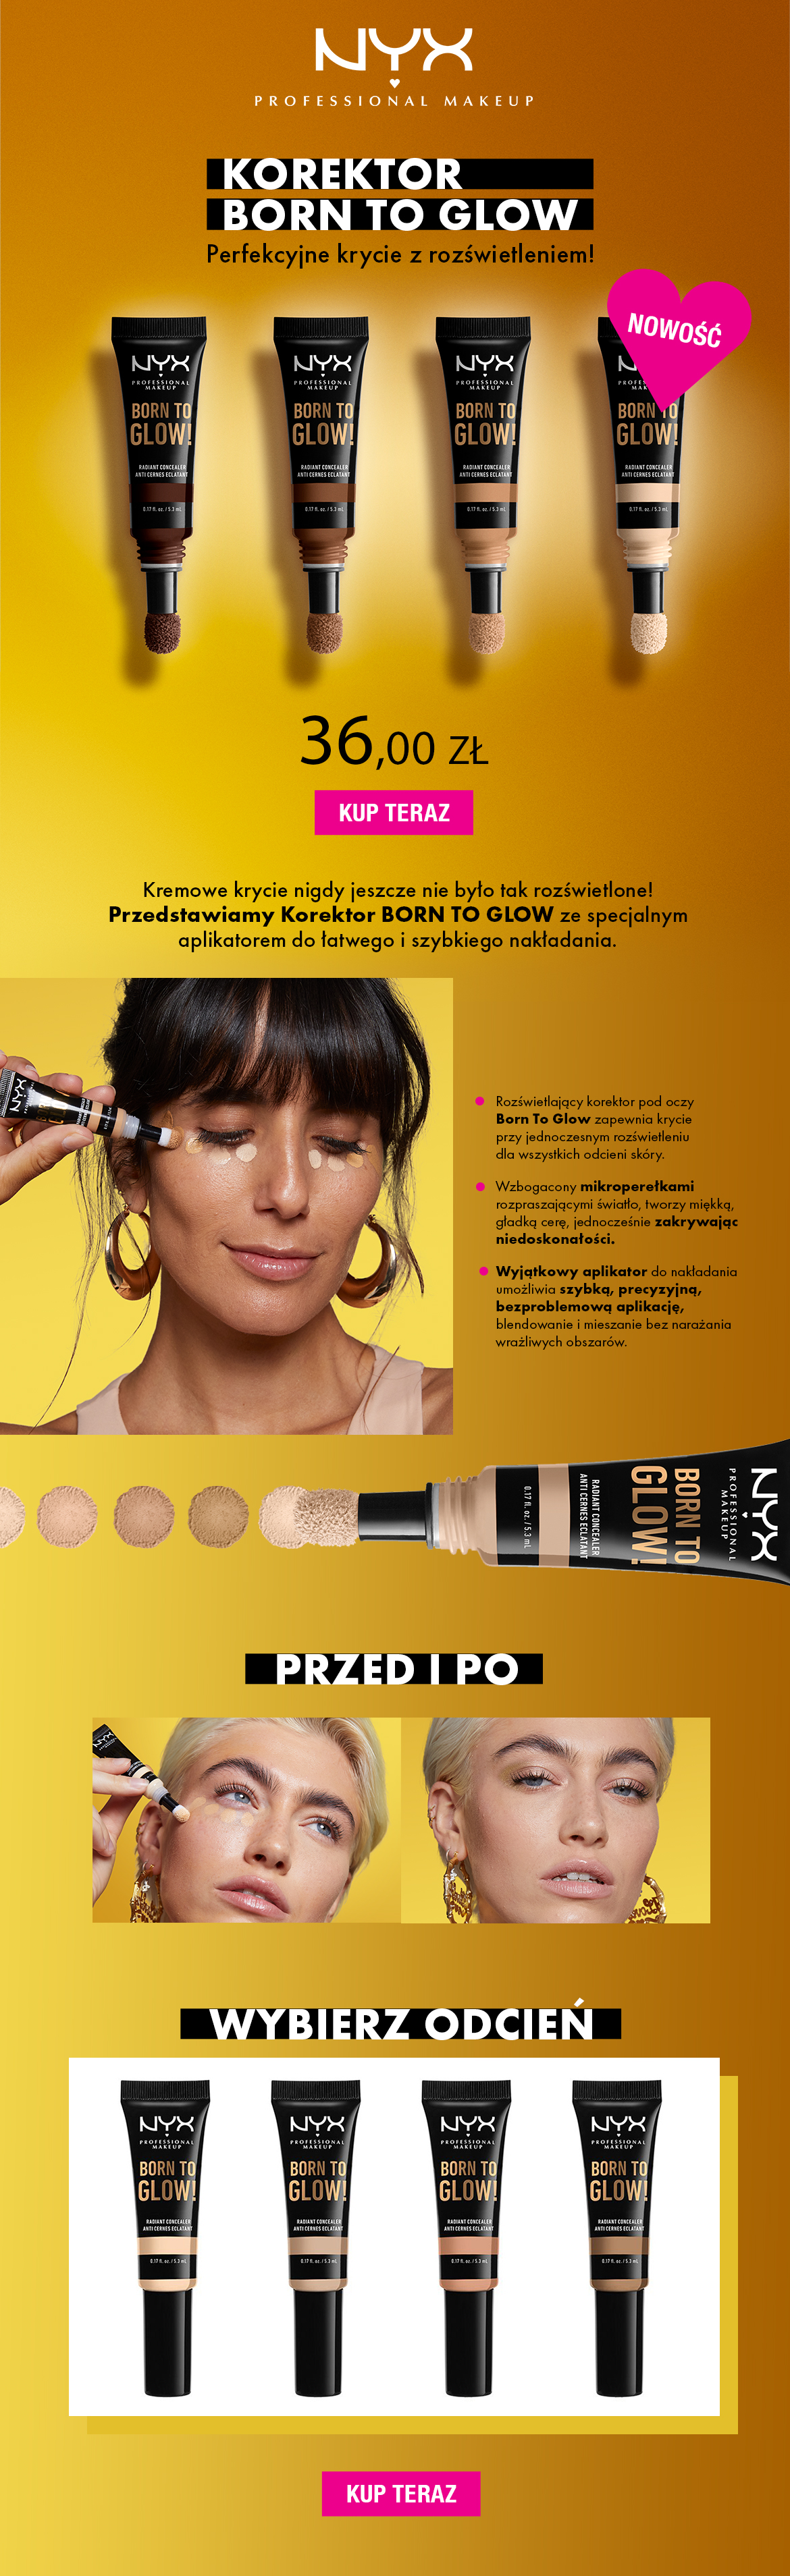 NYX PROFESSIONAL MAKEUP BORN TO GLOW KOREKTOR